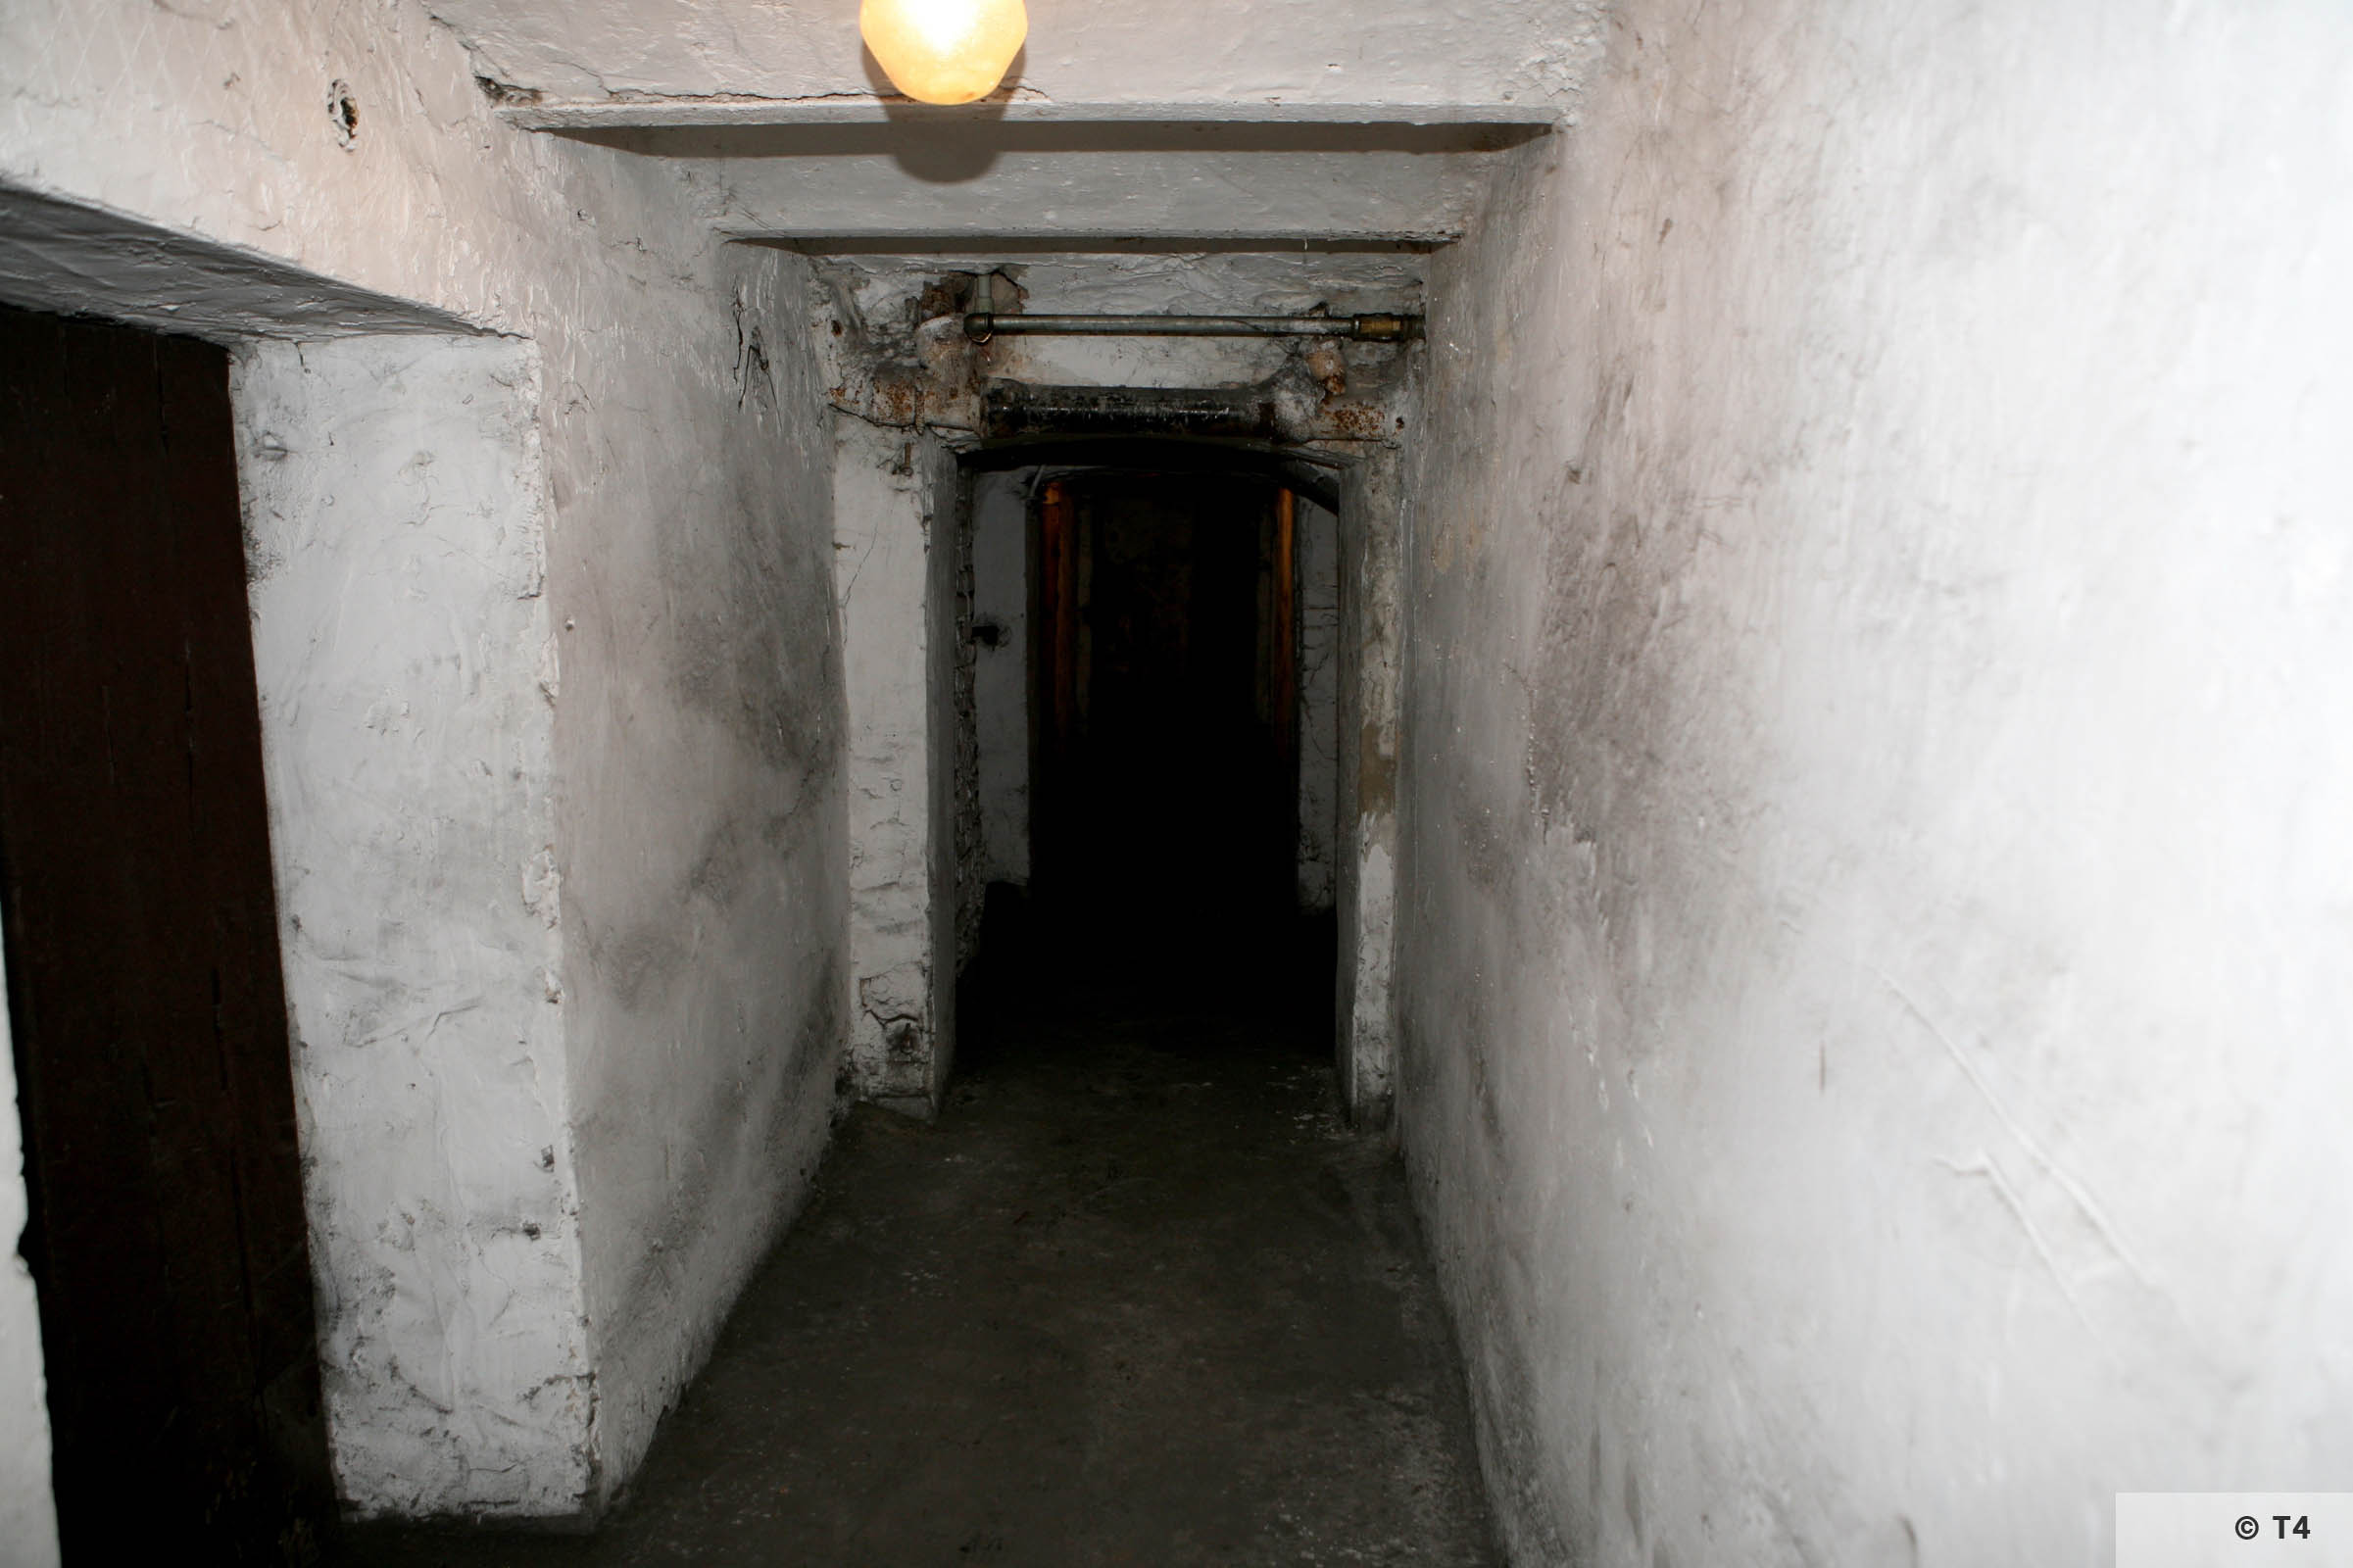 Former cells in the basement of the amdinistration building and prisoner accomodation. 2008 T4 4573